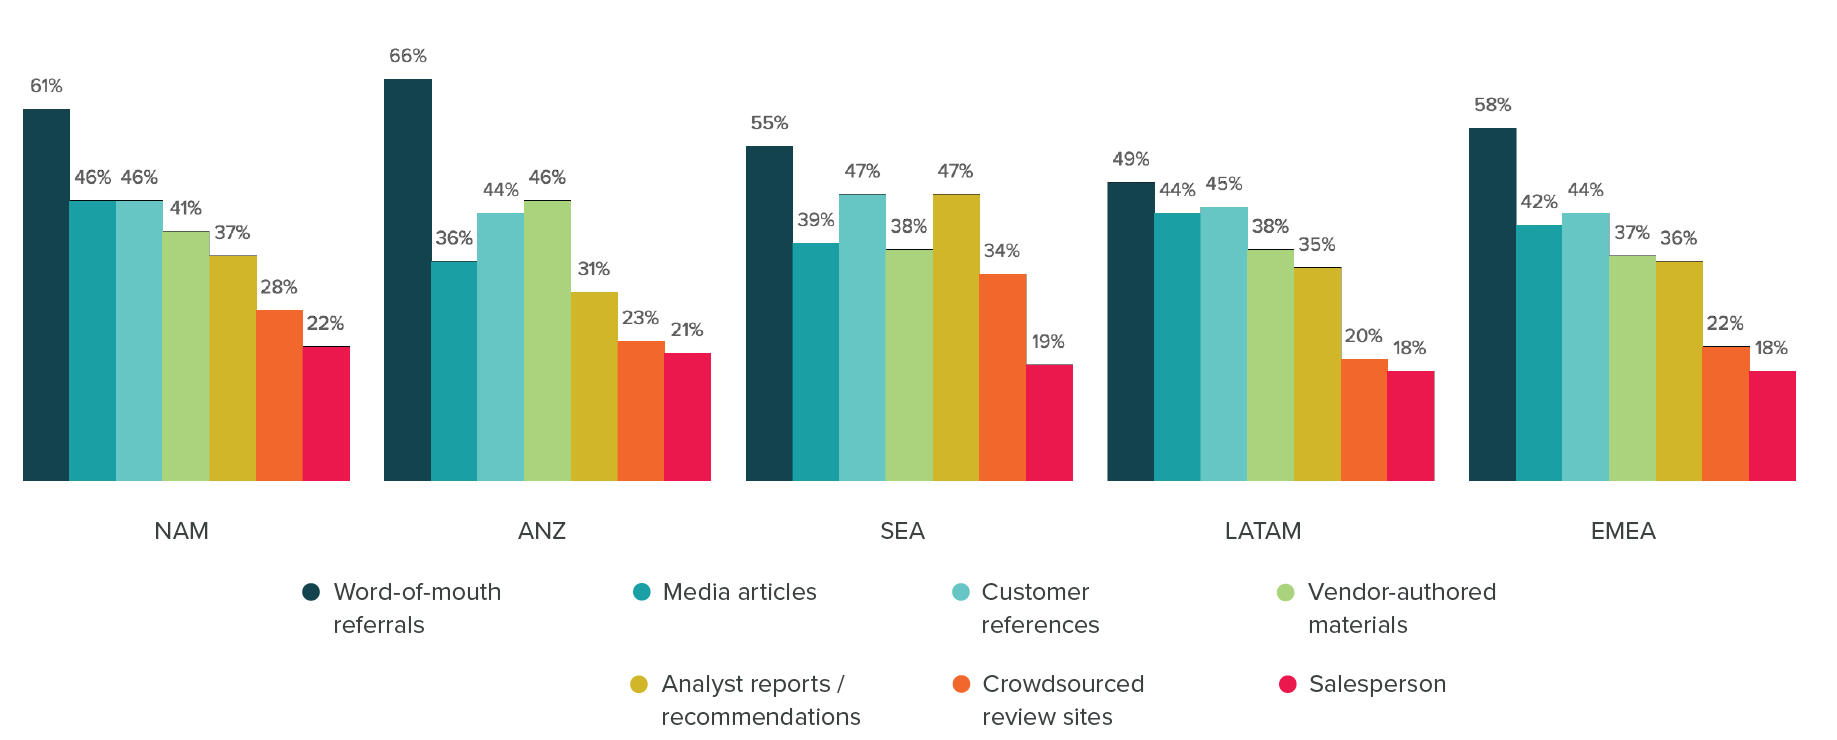 The salesperson is the least-trusted source of information when buying business software